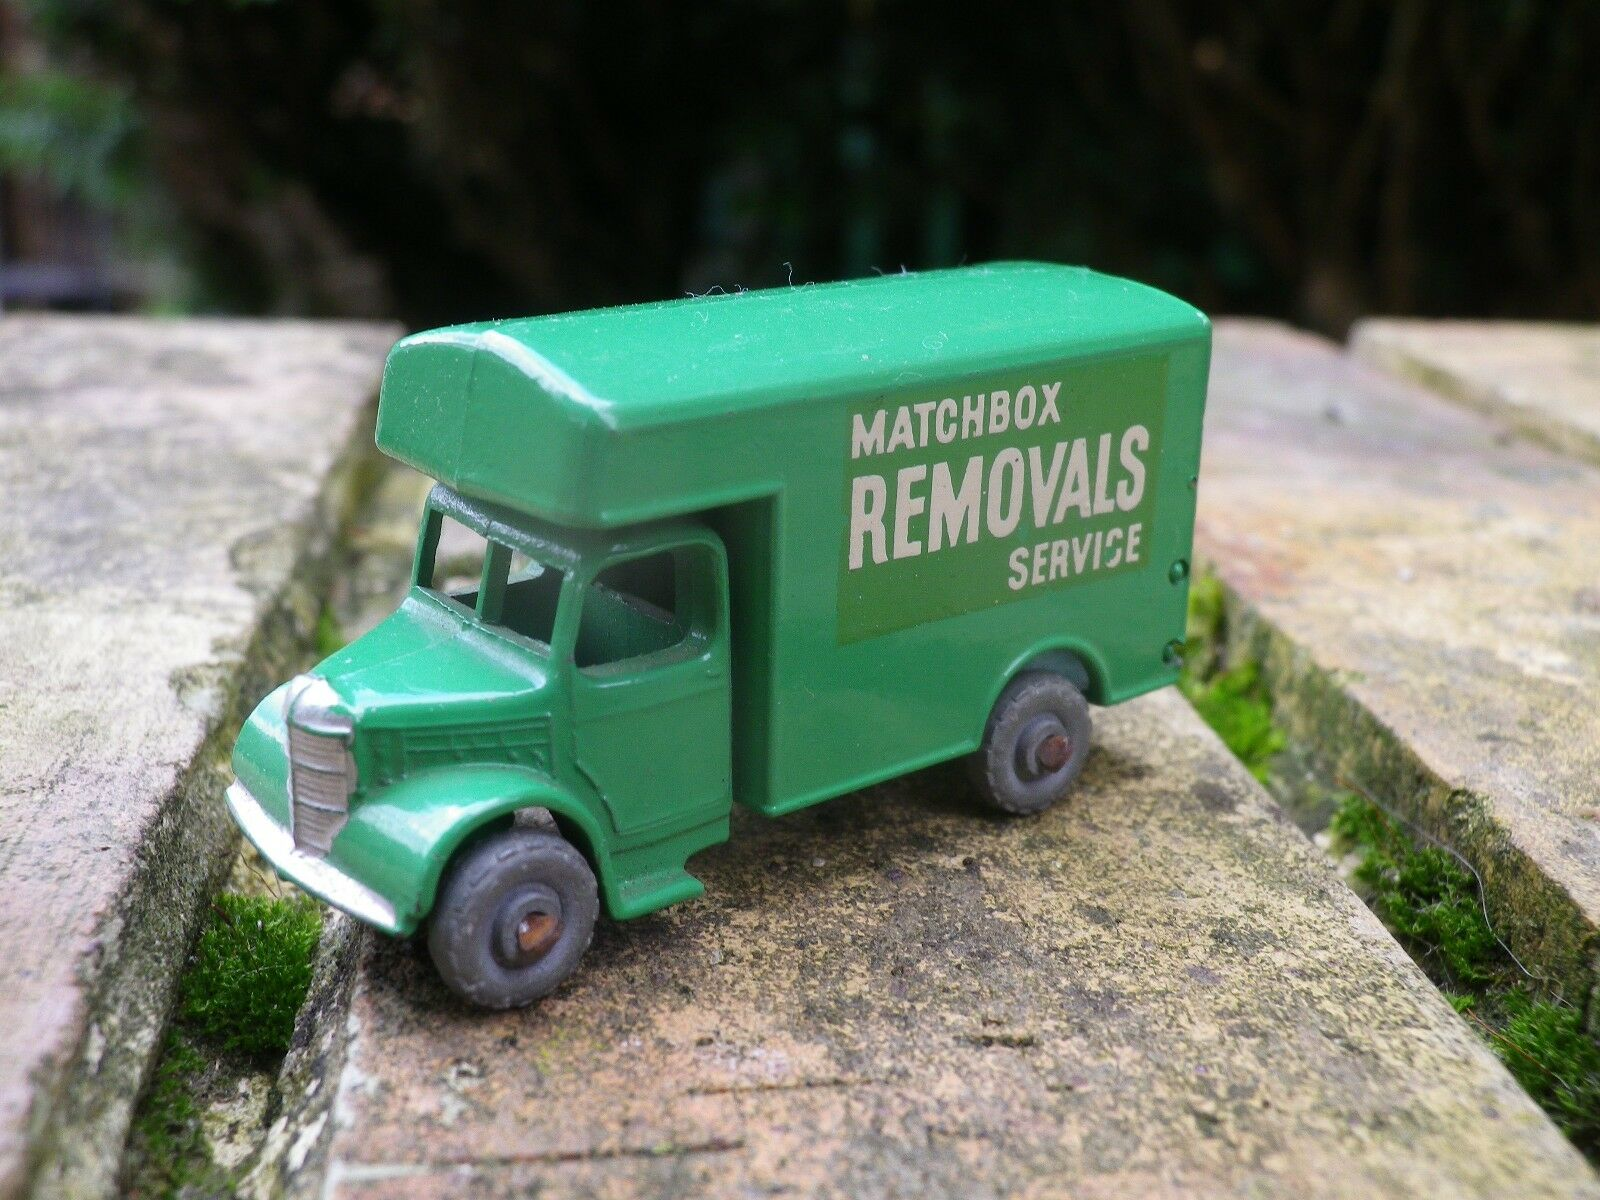 MATCHBOX LESNEY MOKO 17 a a a BEDFORD REMOVALS verde CLAIR COMME NEUF sans boite 583b4f